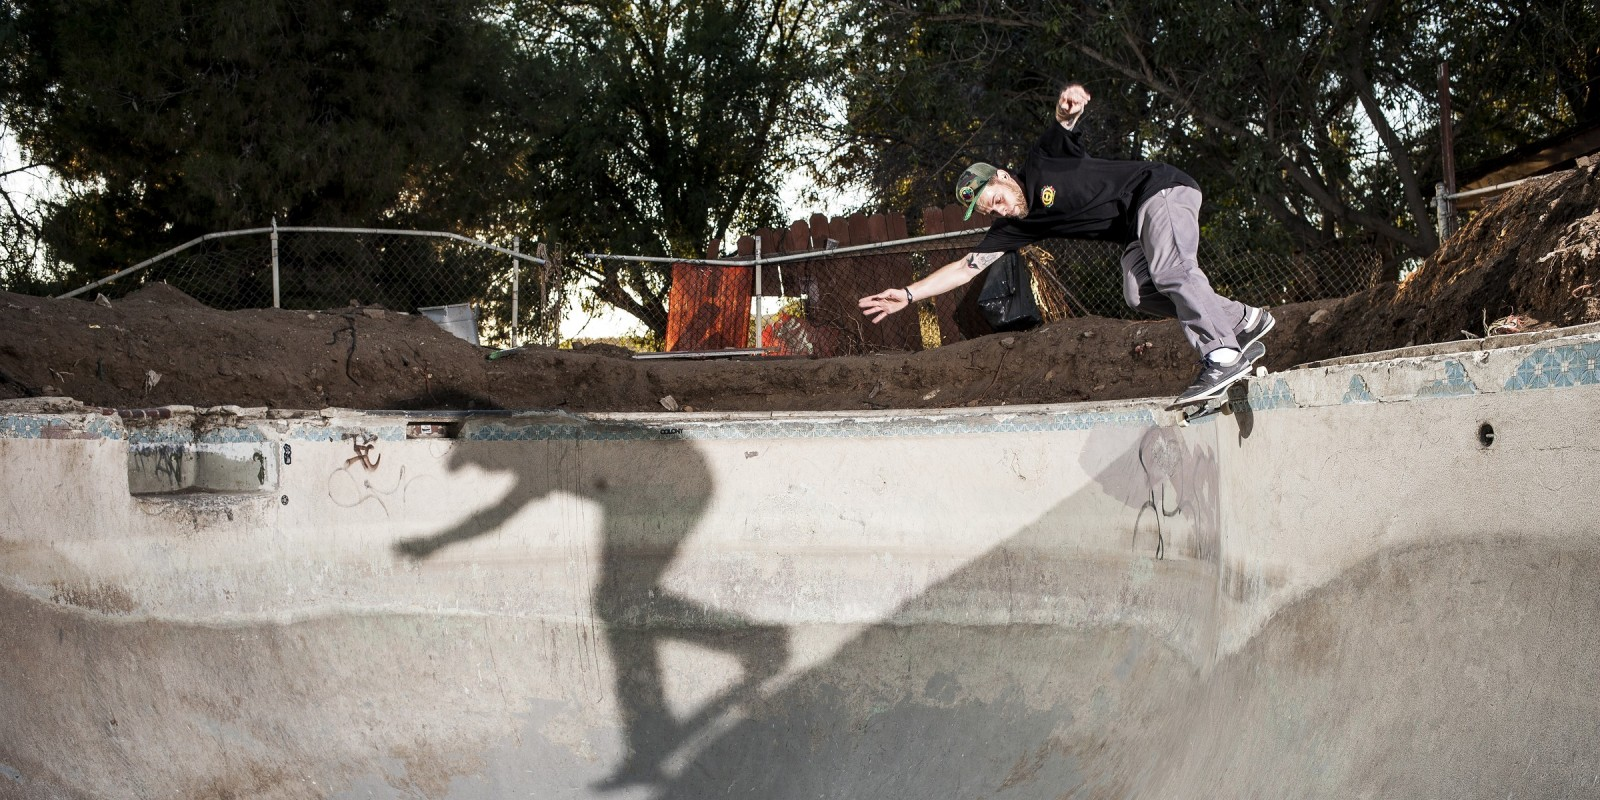 PLG has been a Professional Skateboarder for two decades! Countless successes in competition, overcoming injuries, and staying true to his Skating, Pierre is living the dream. Watch as PLG pulls out the figurative power tools and dismantles everything in